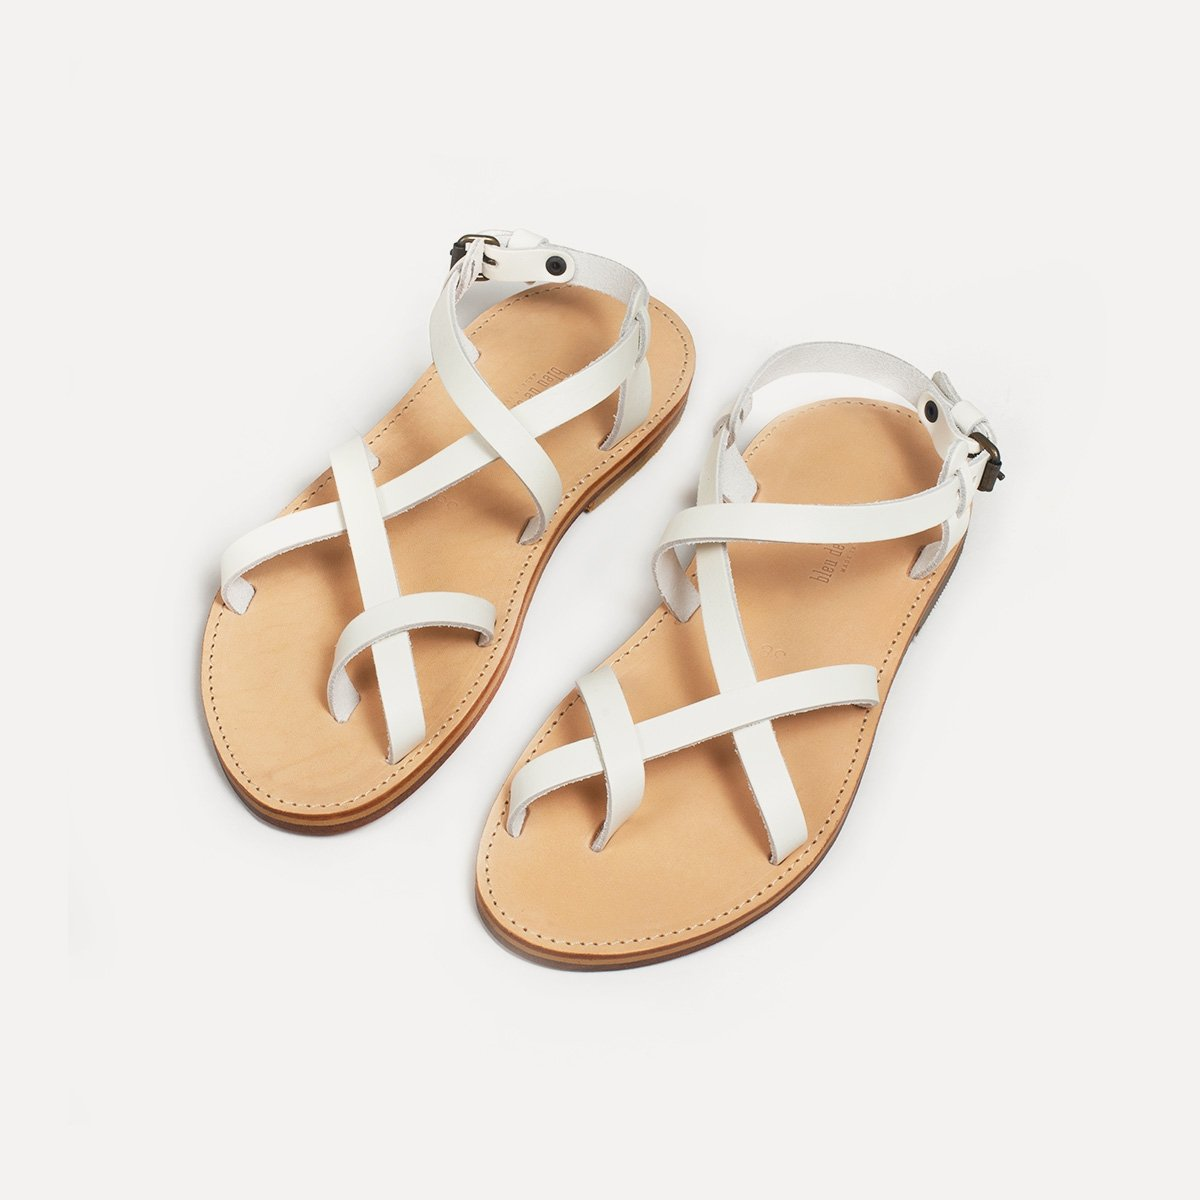 Nara leather sandals - White (image n°3)